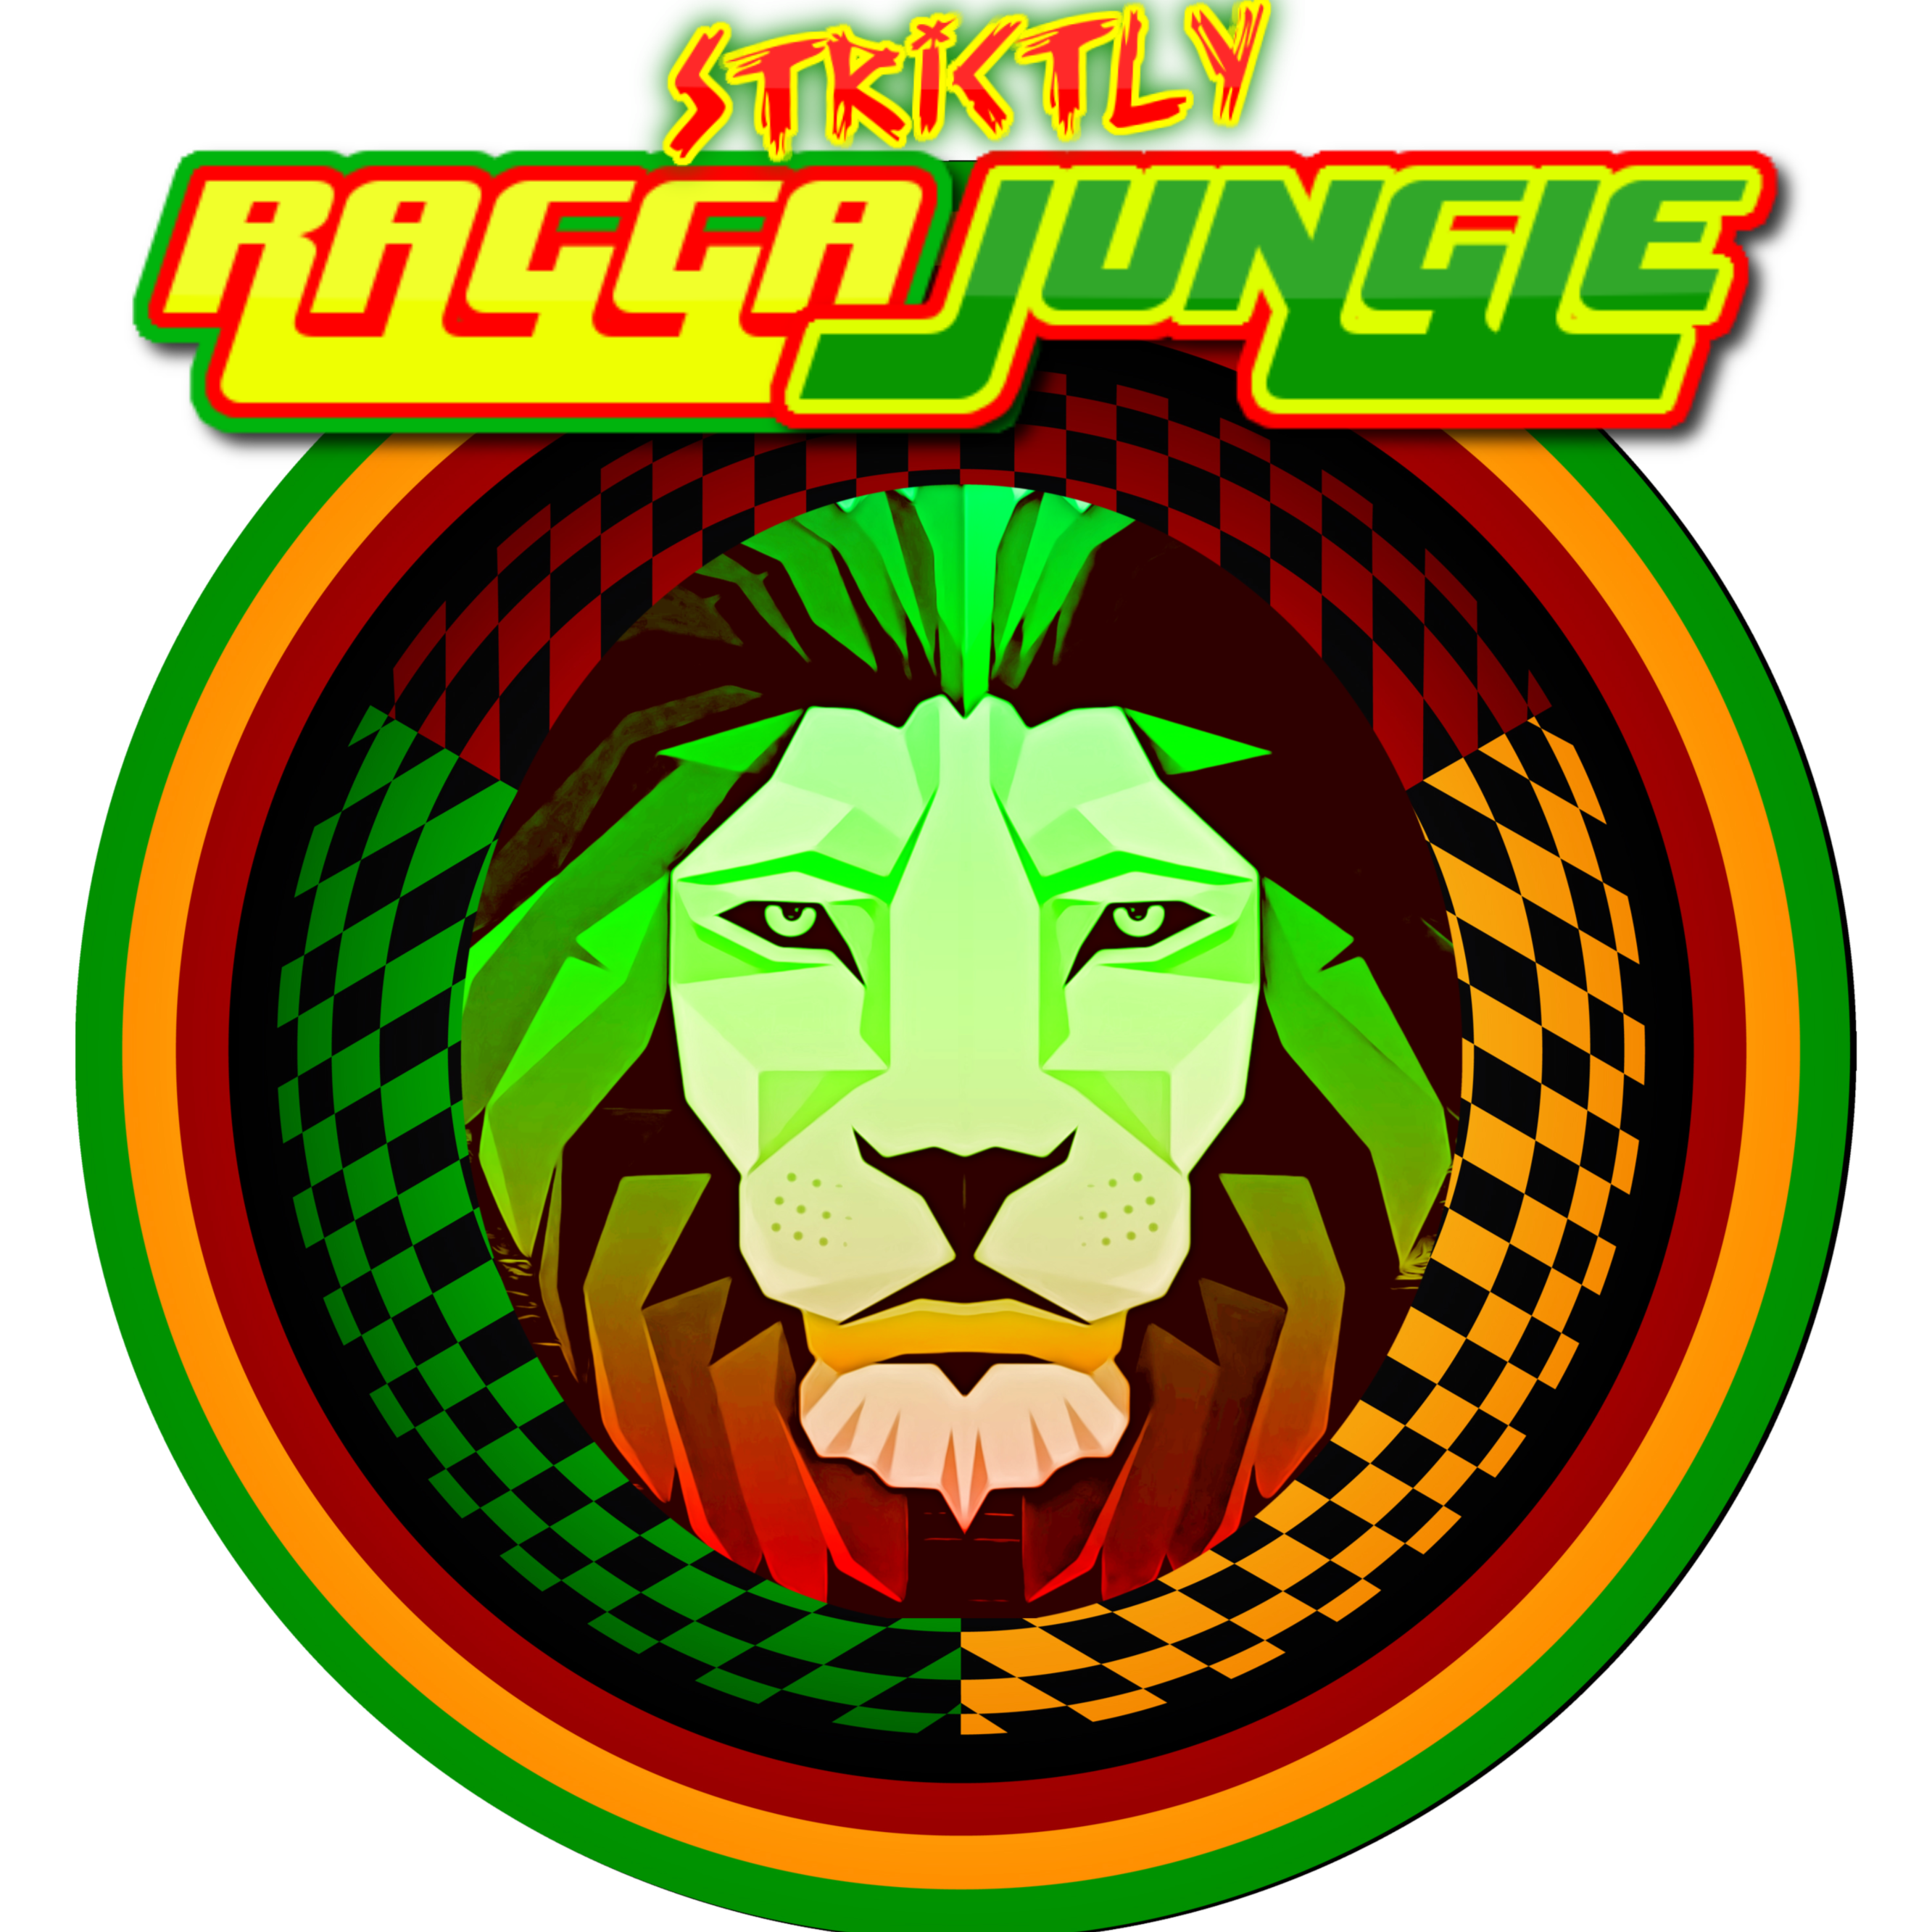 100% STRICTLY RAGGA JUNGLE RADIO